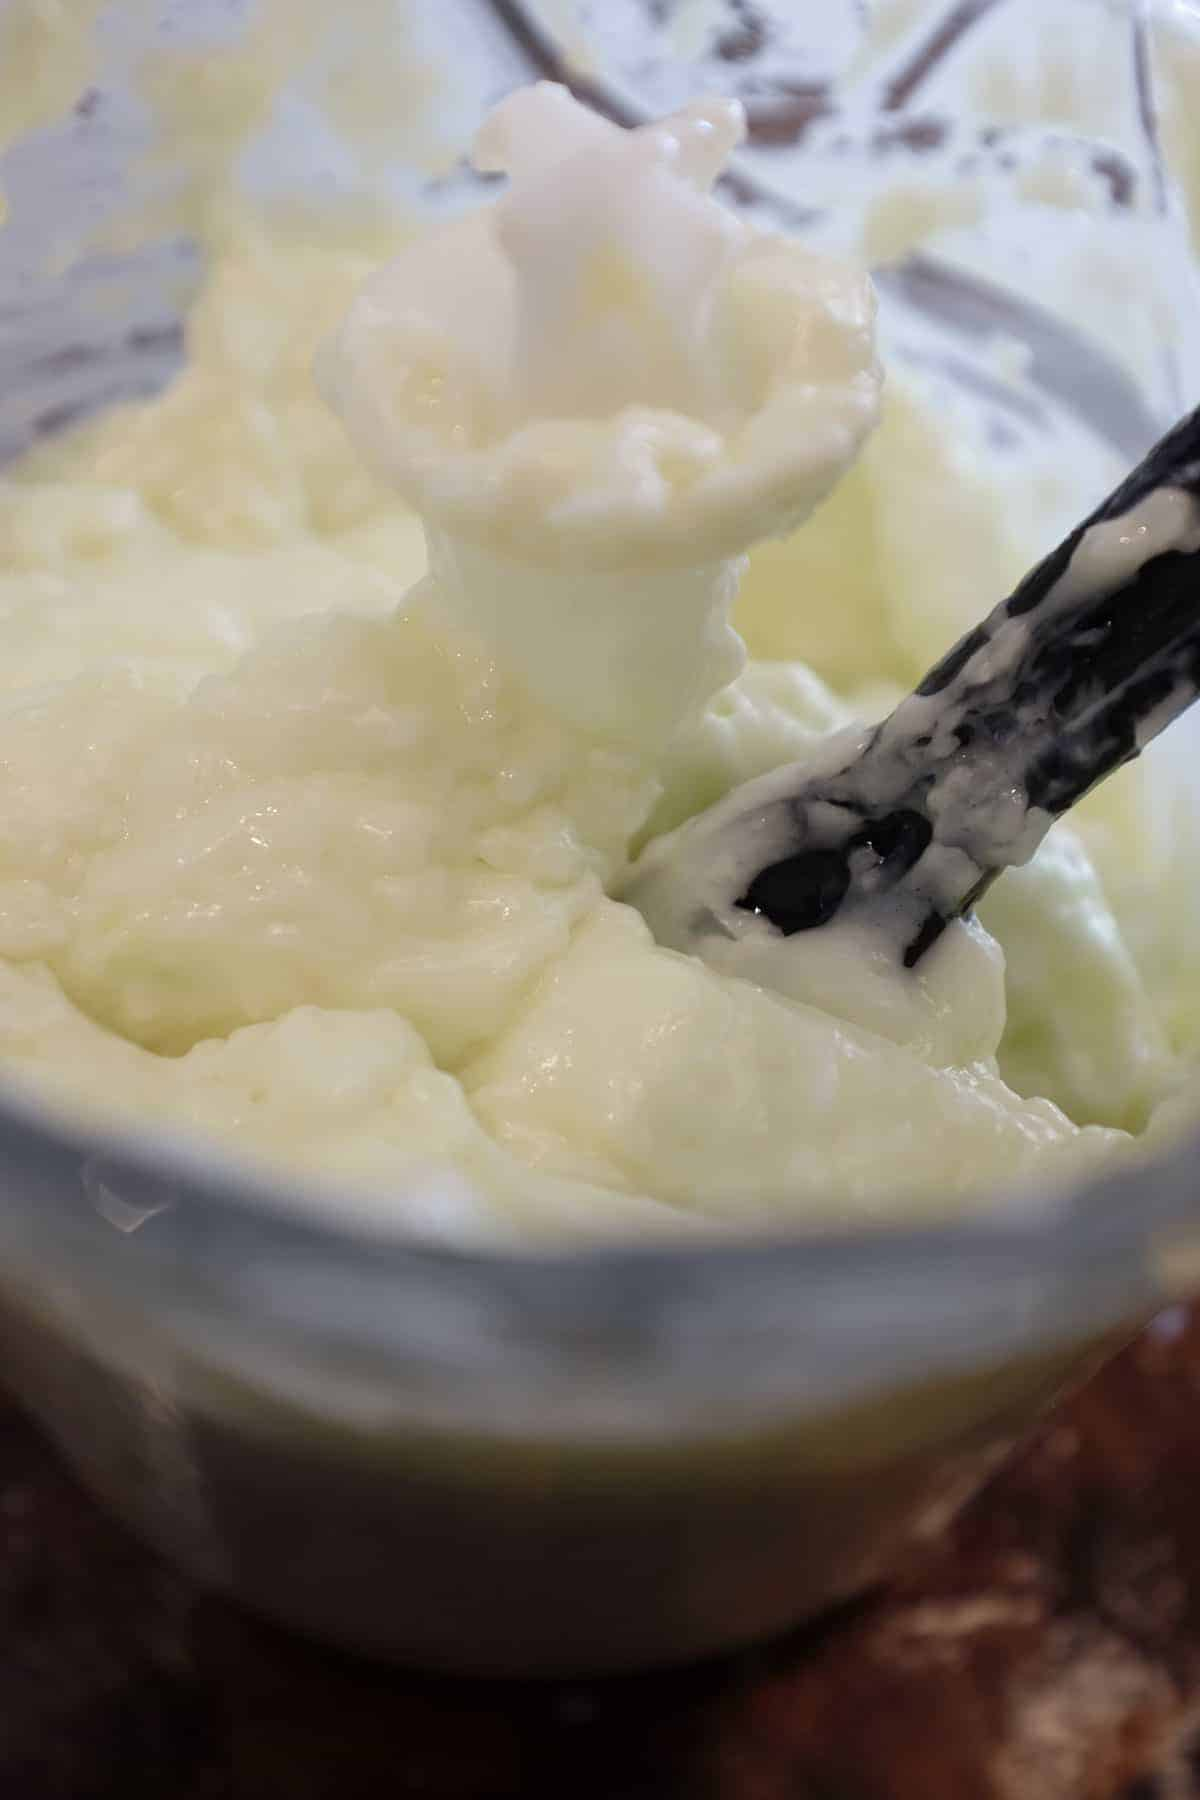 Garlic and oil is whipped in the food processor into a thick, creamy sauce called toum.